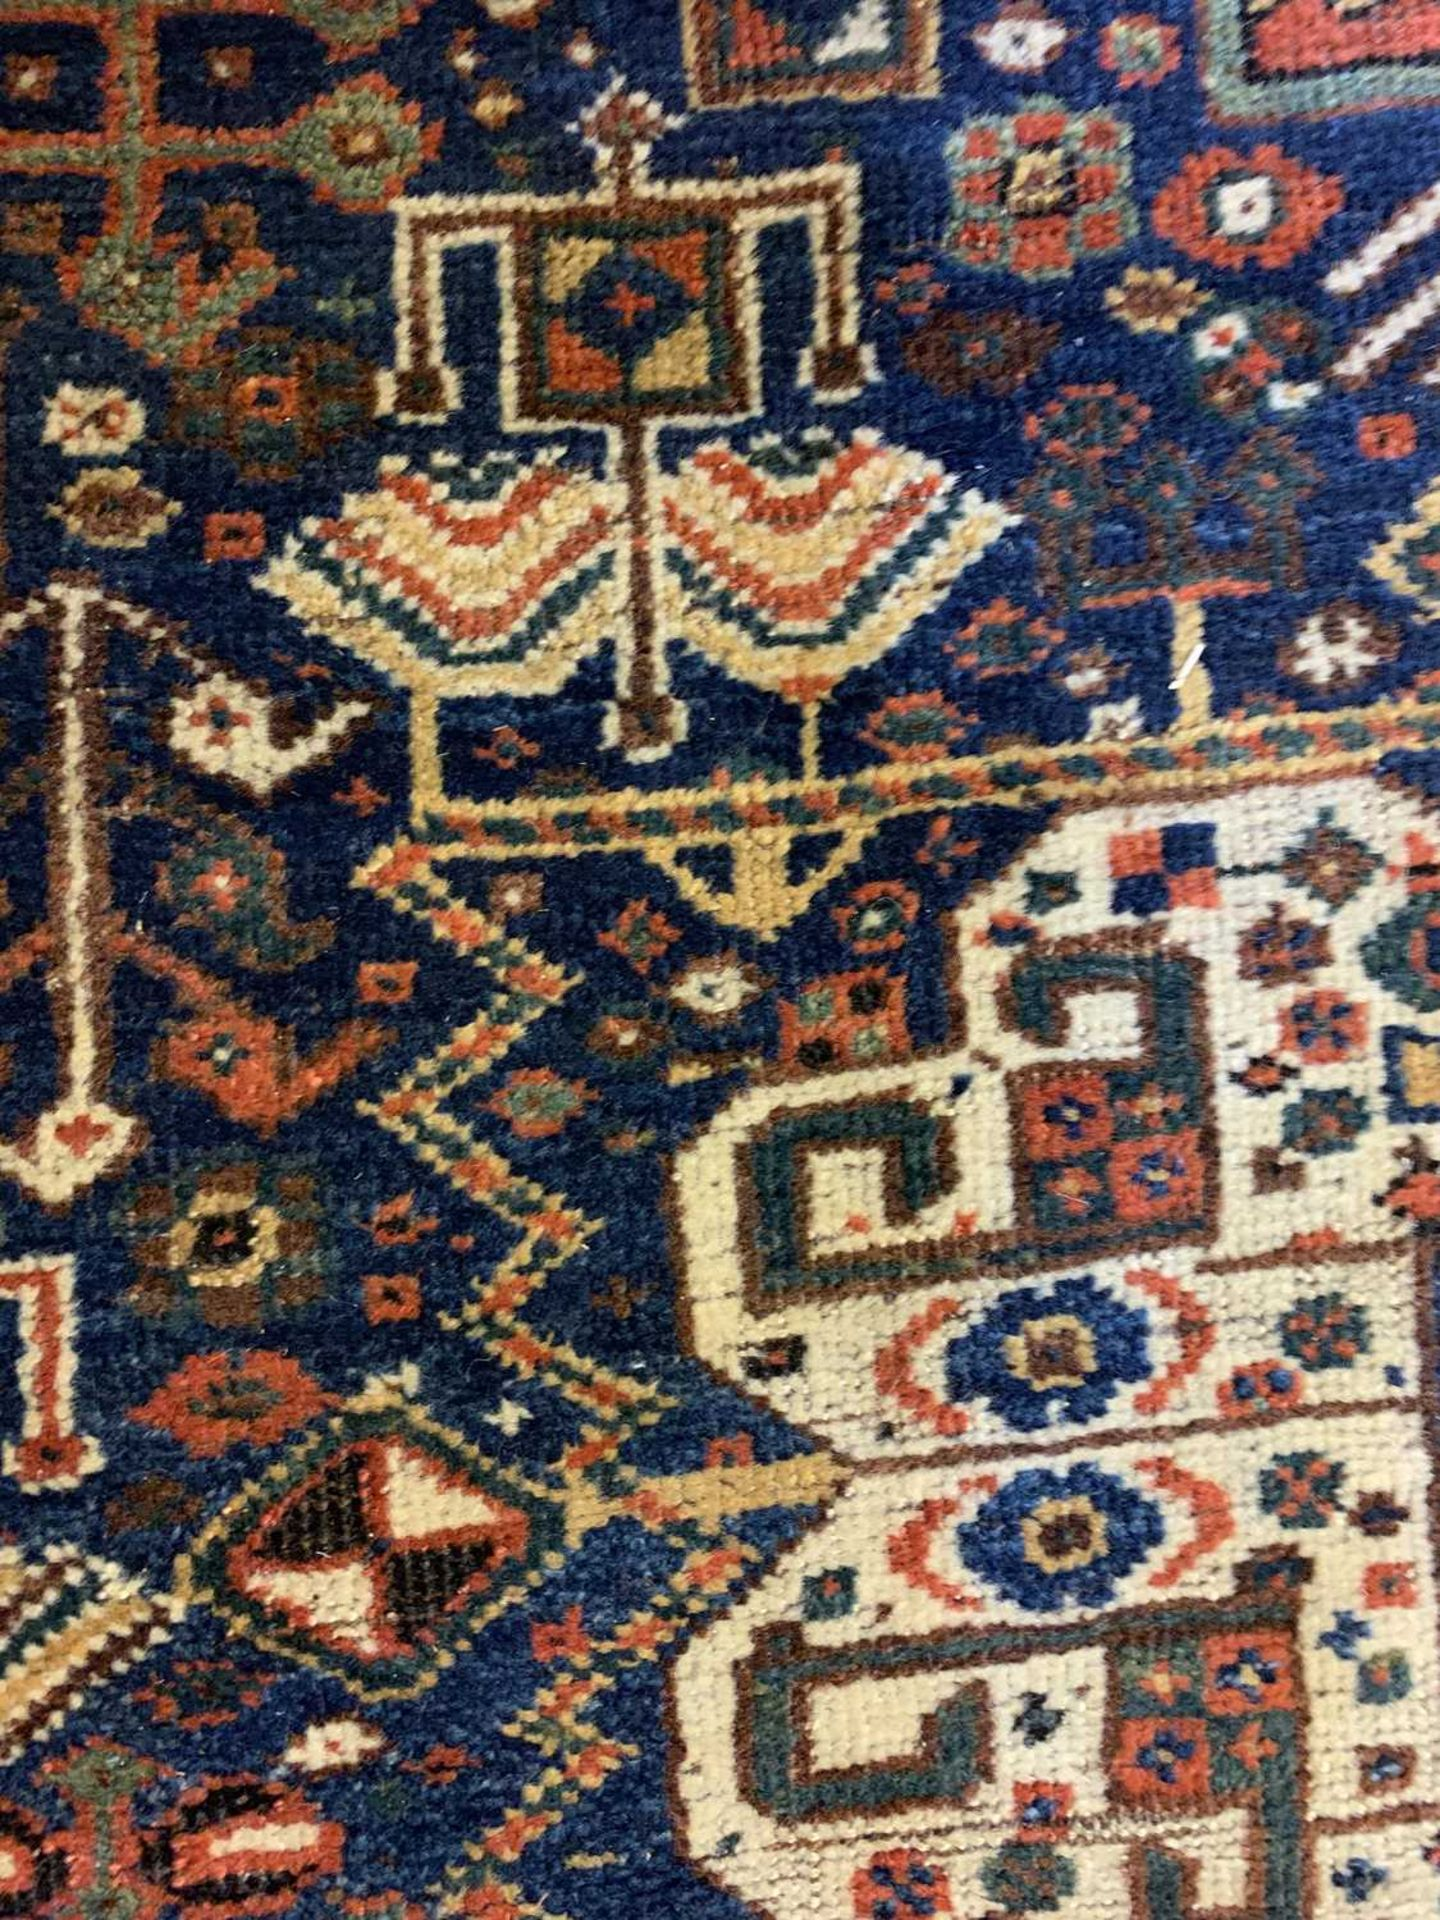 A Persian carpet, - Image 8 of 14